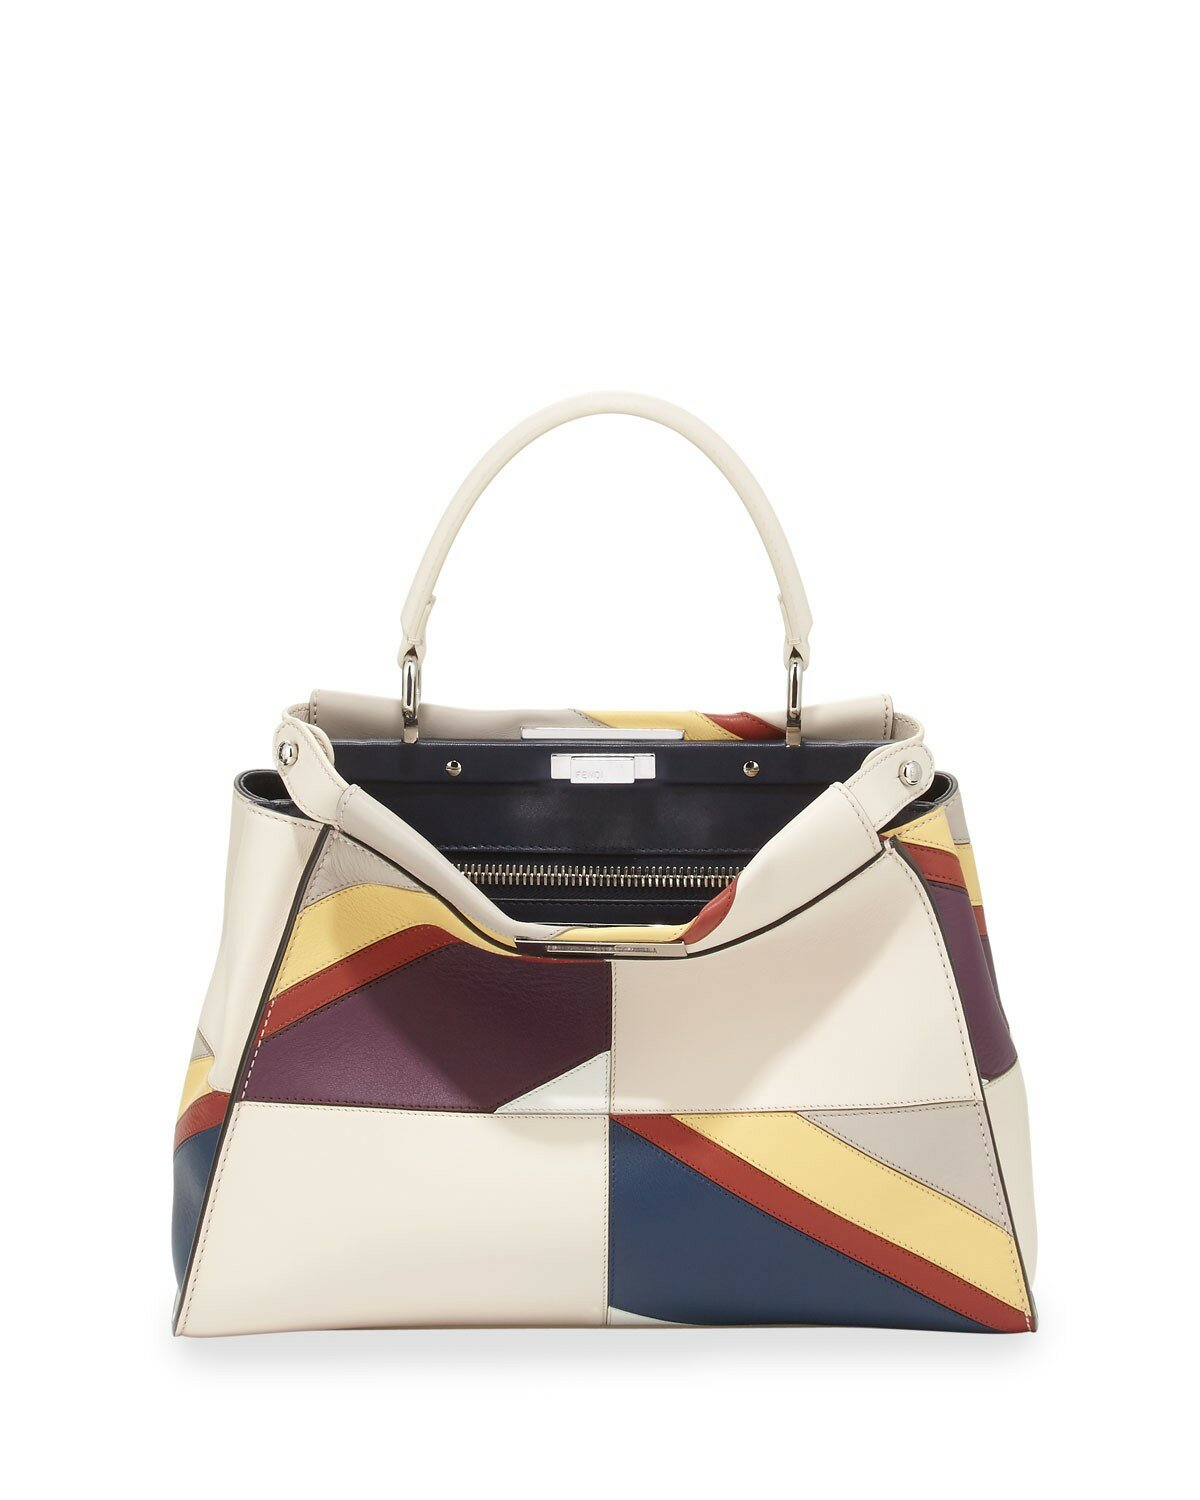 Fendi peekaboo medium patchwork marquetry calf bag white multi,entire collection new york,enjoy great discount new york